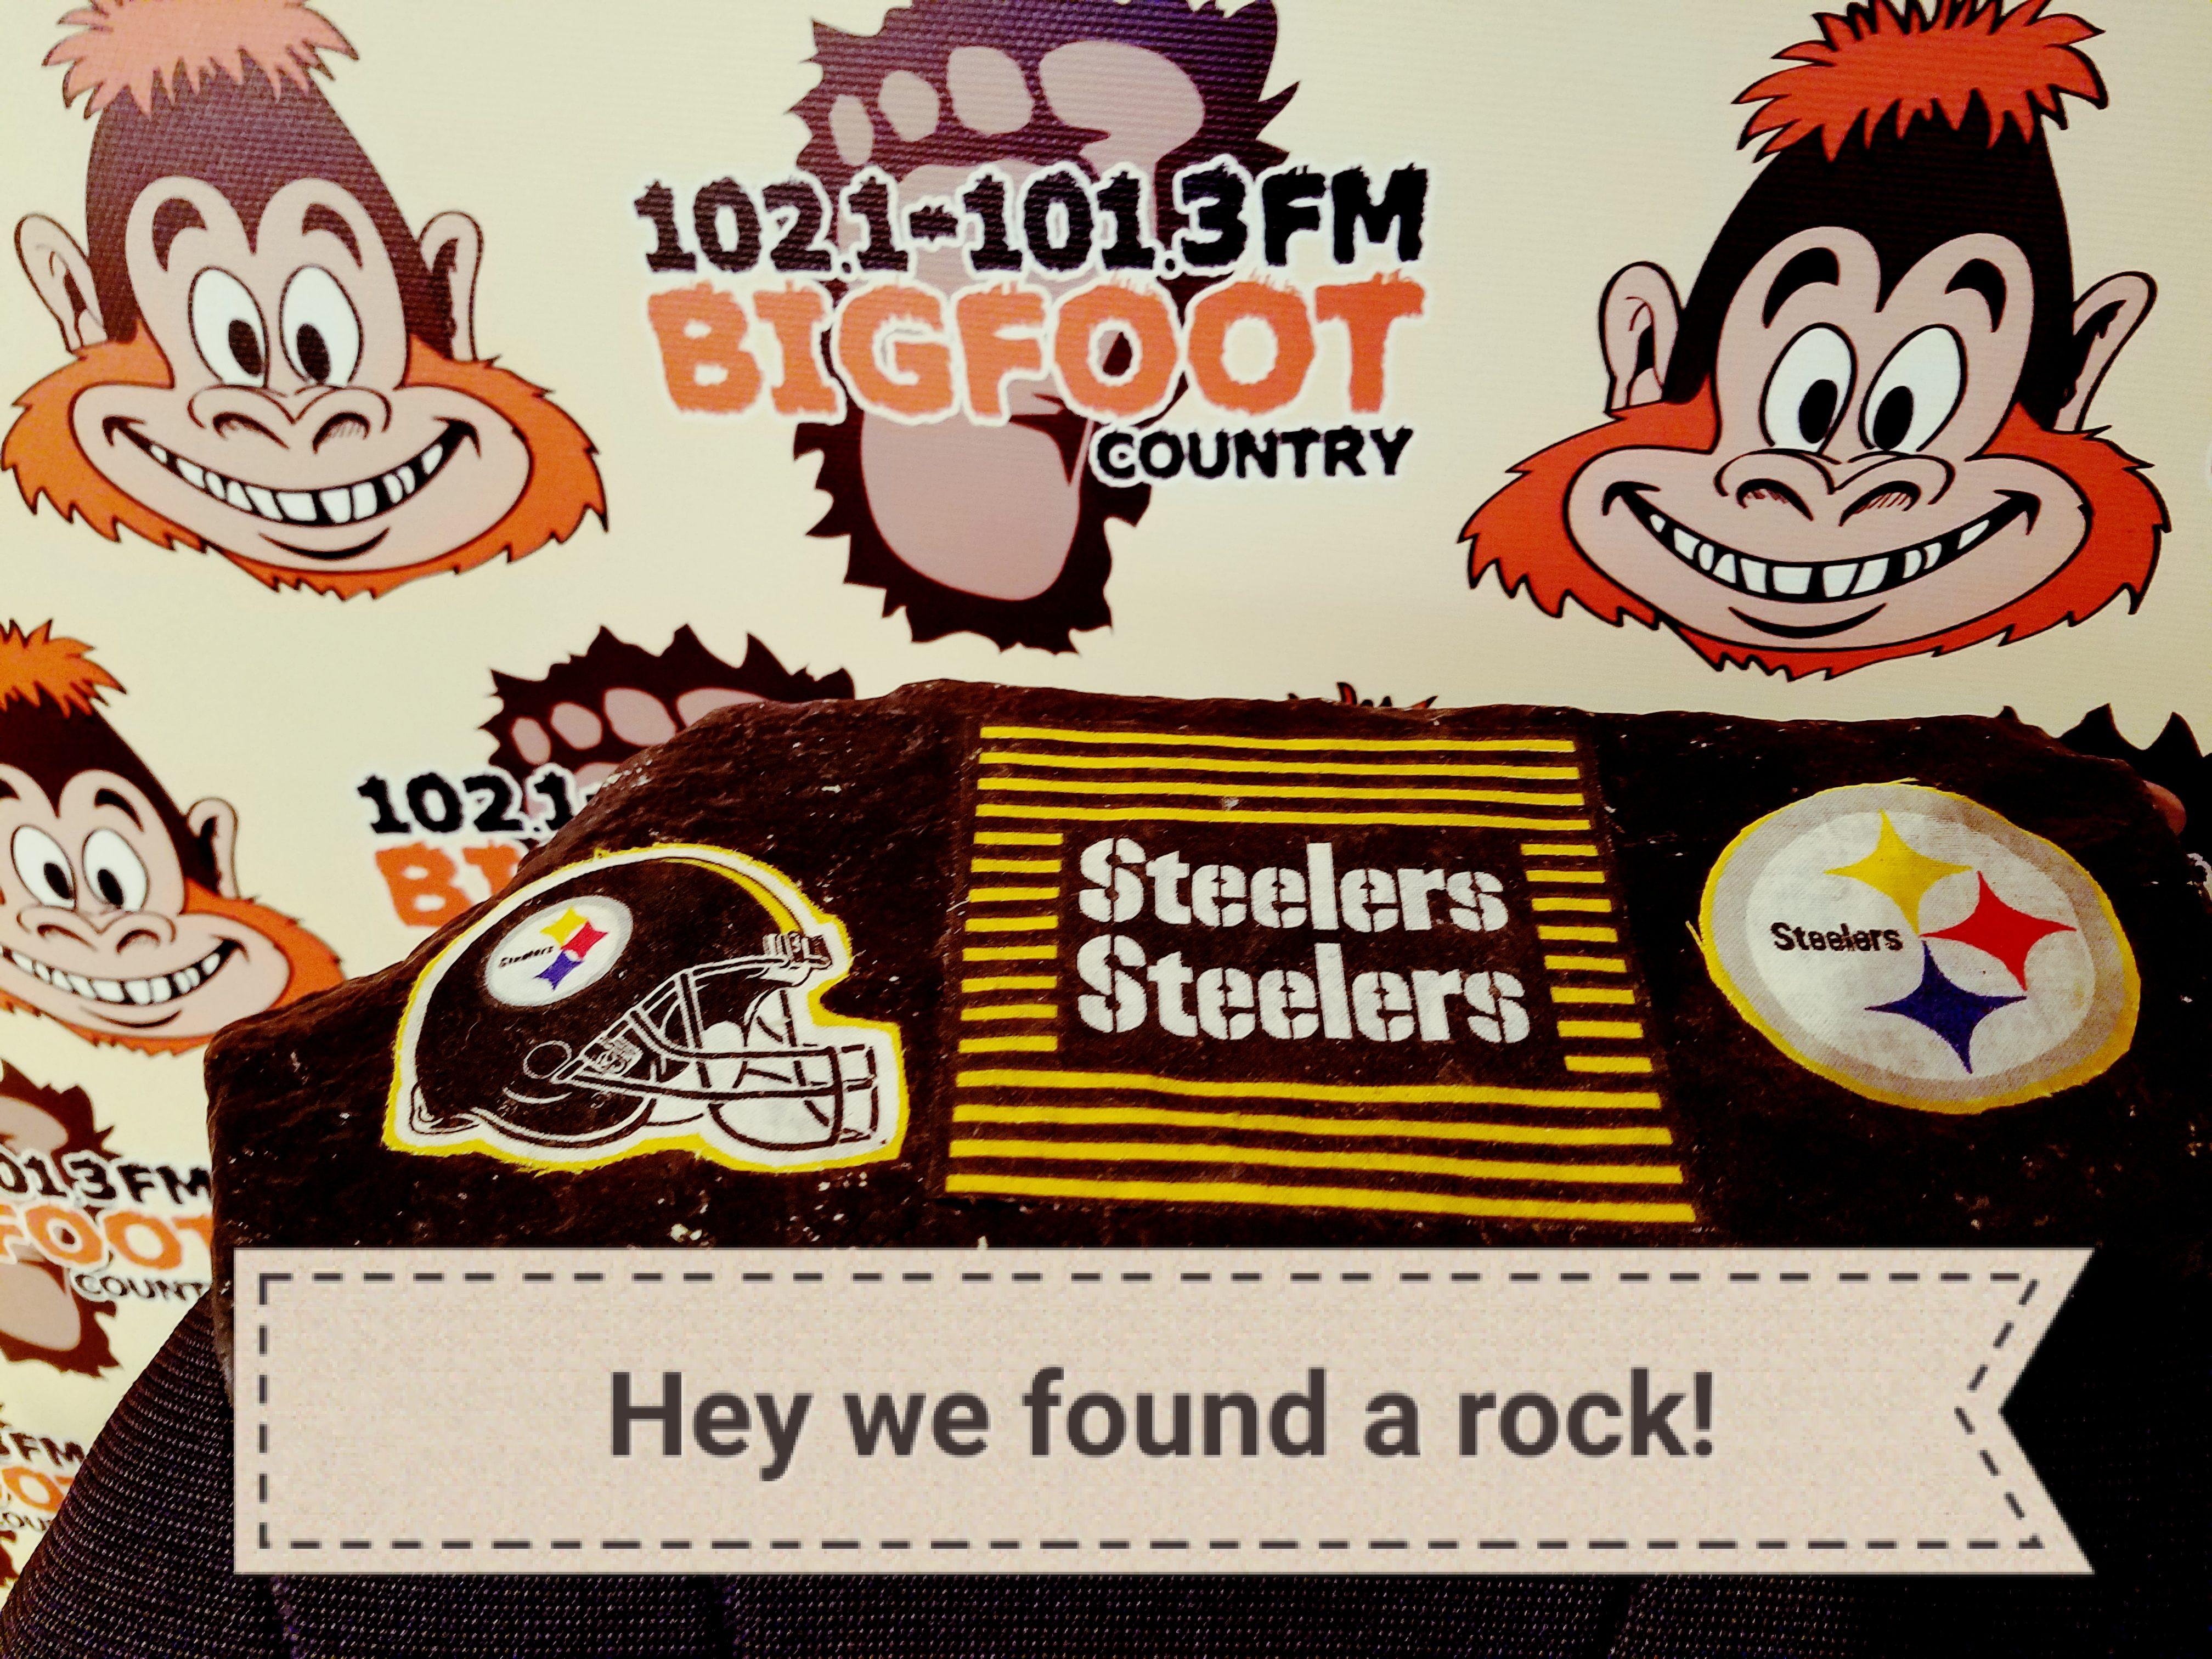 We're rocking out a Bigfoot Country!!